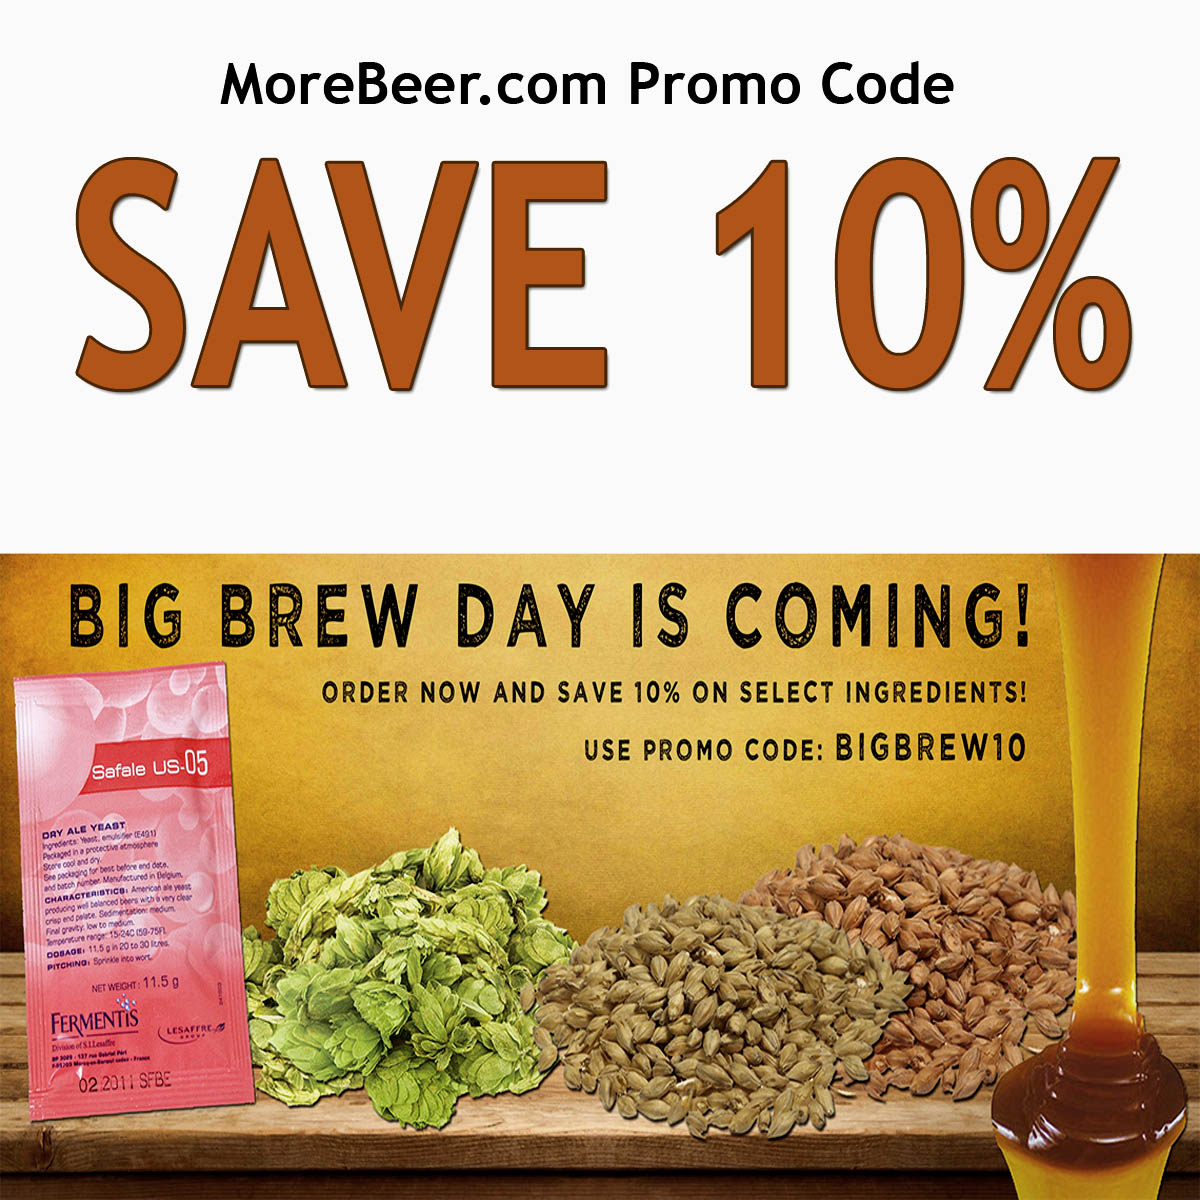 Home Brewer Promo Code for Save 10% On Select Home Brewing Ingredients With This MoreBeer.com Promo Code Coupon Code